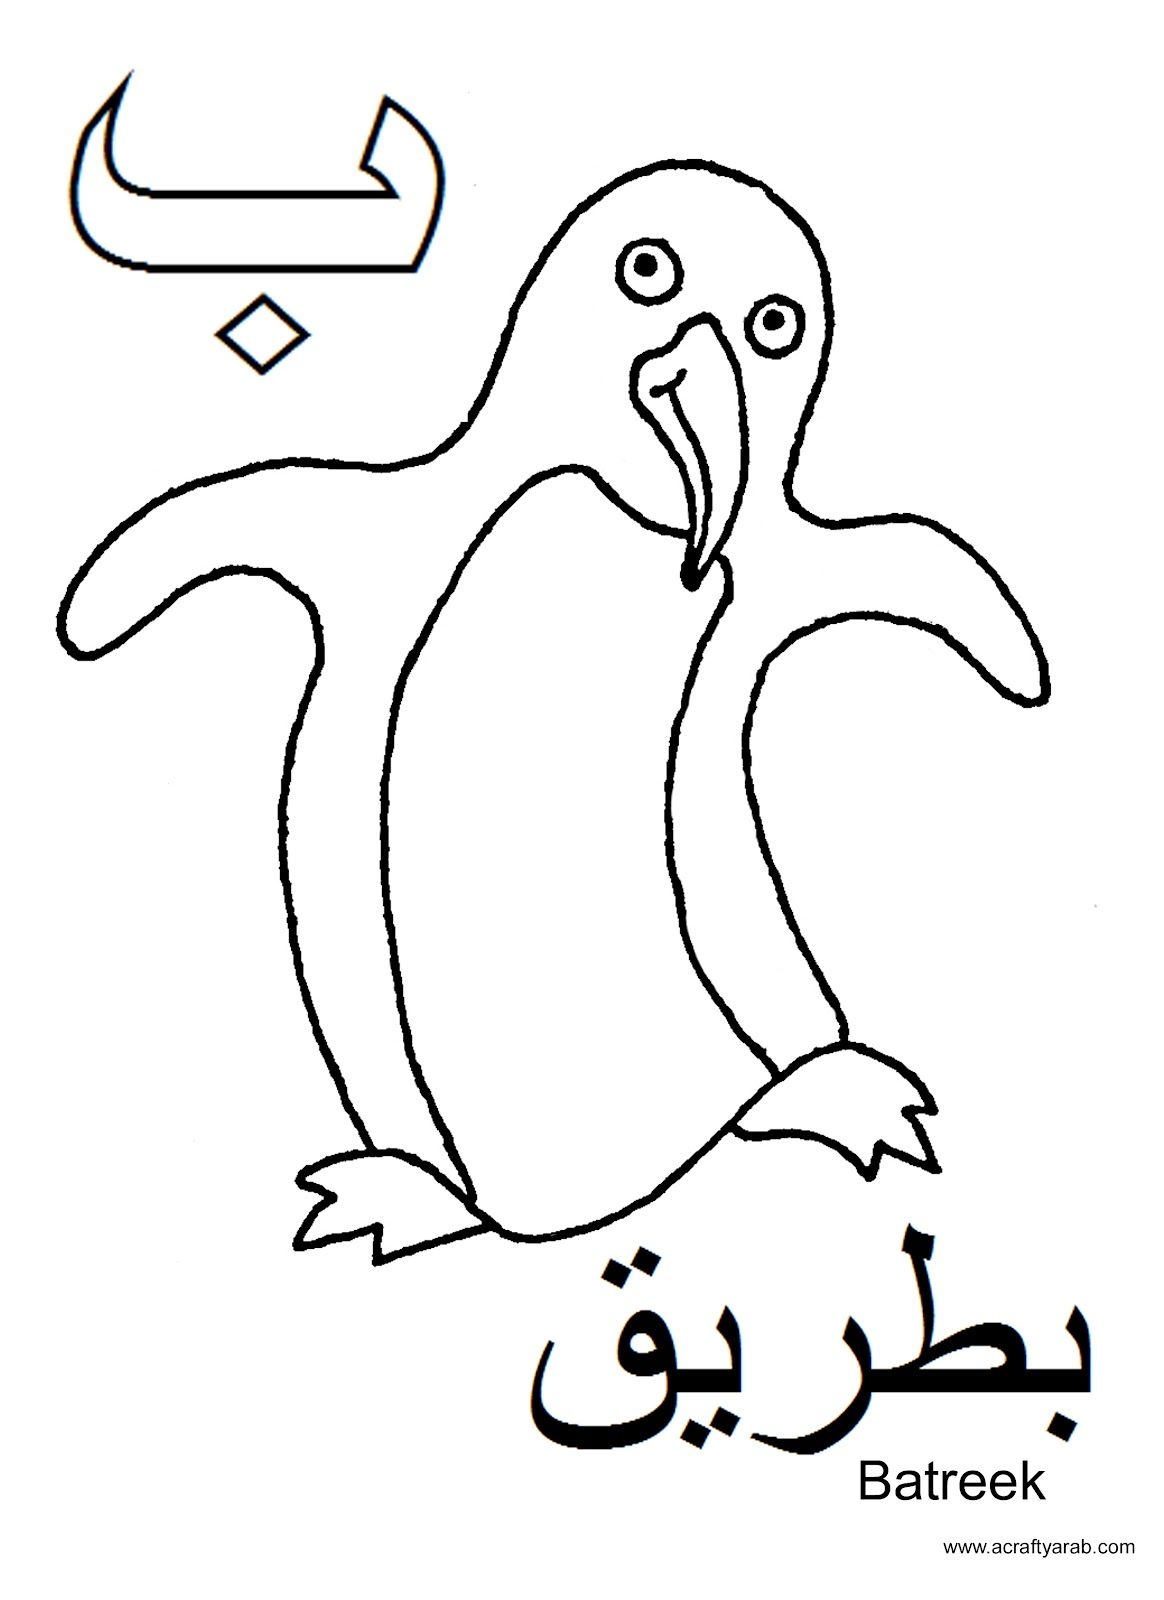 A Crafty Arab: Arabic Alphabet coloring pages...Baa is for